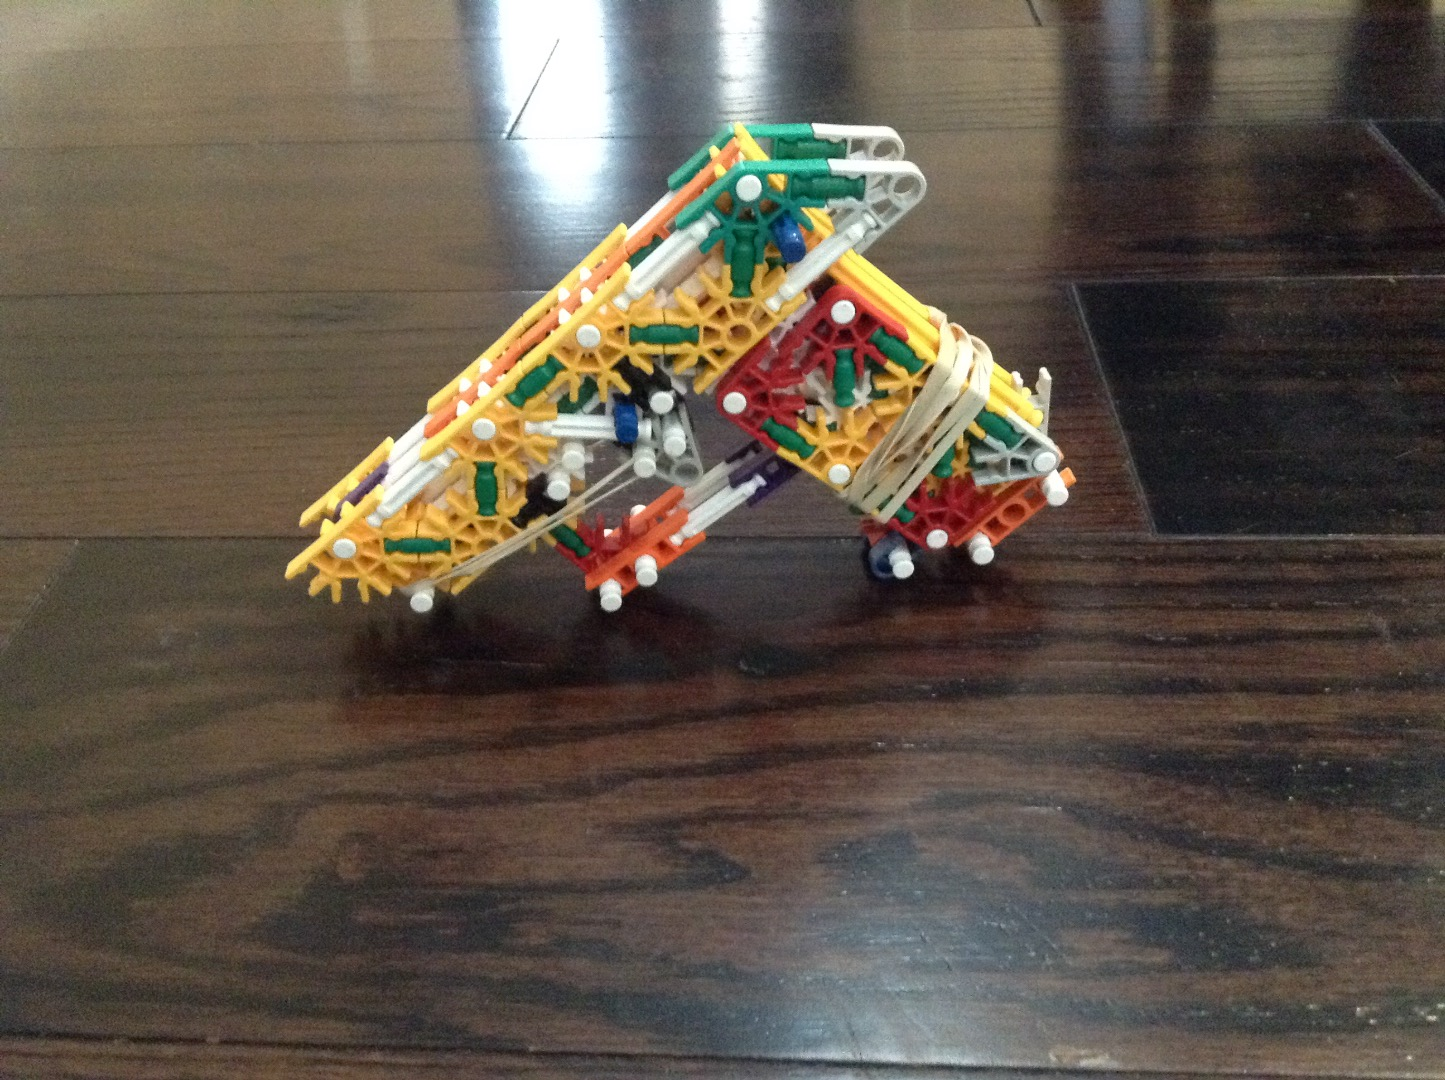 Picture of K'nex Walther PPK -- Working Model -Review-